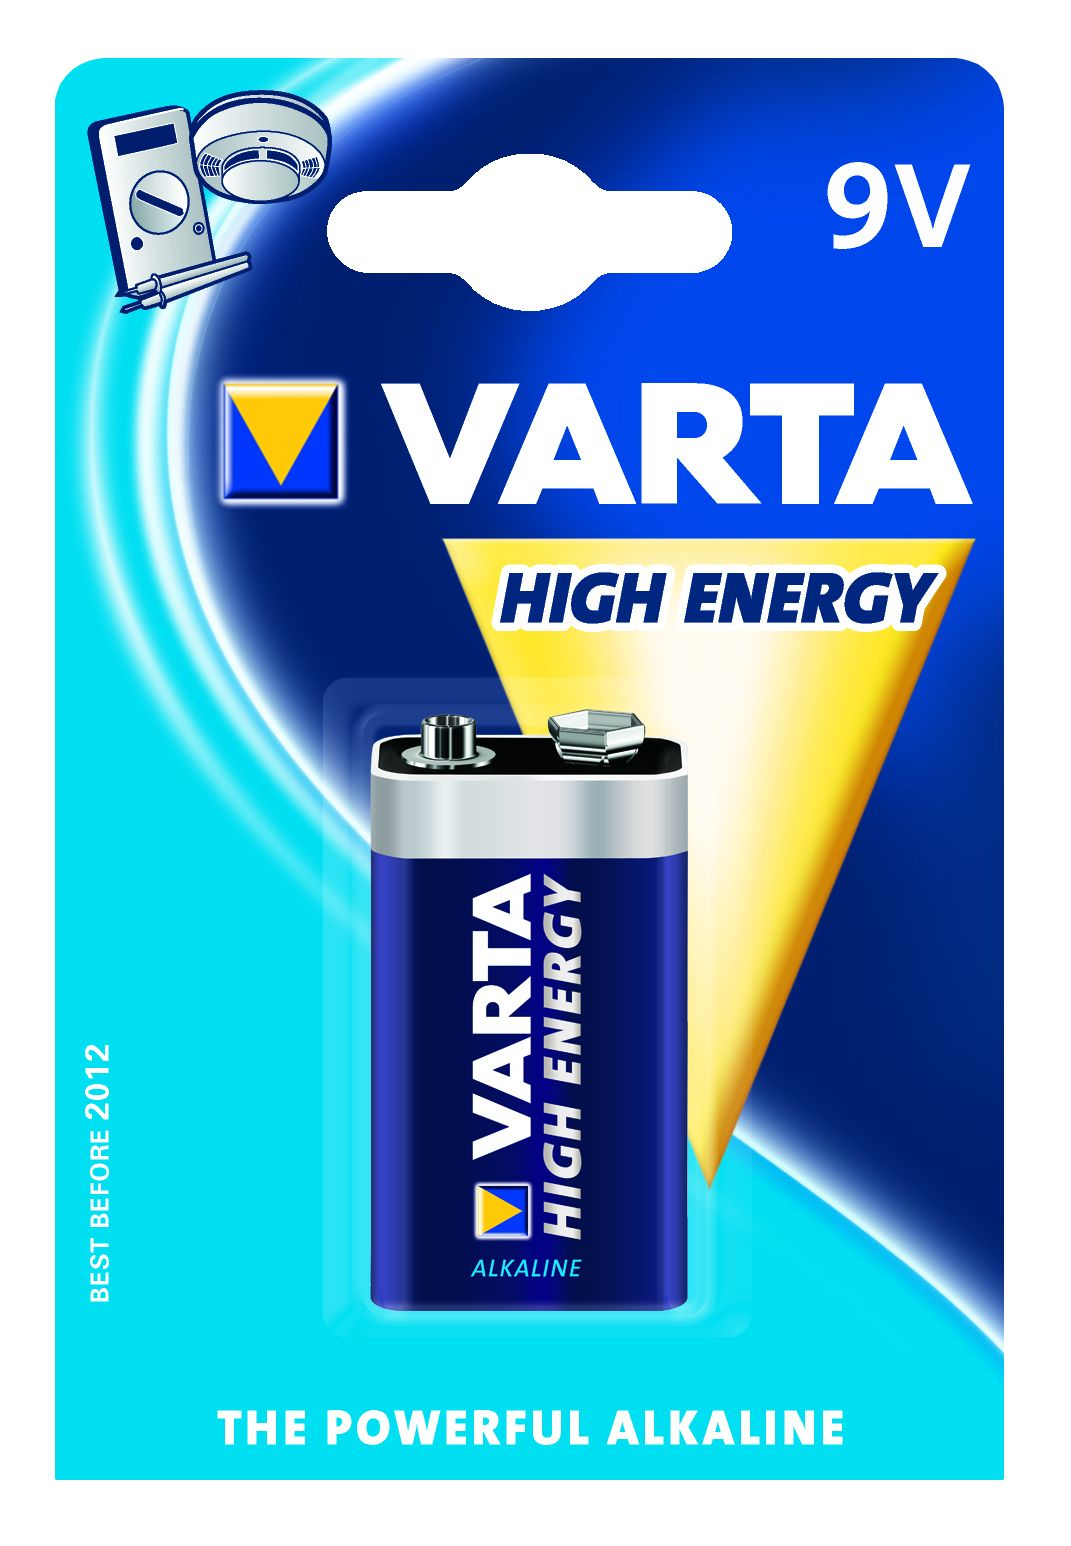 HIGH ENERGY 9V     ALKALINE BL.1 VARTA